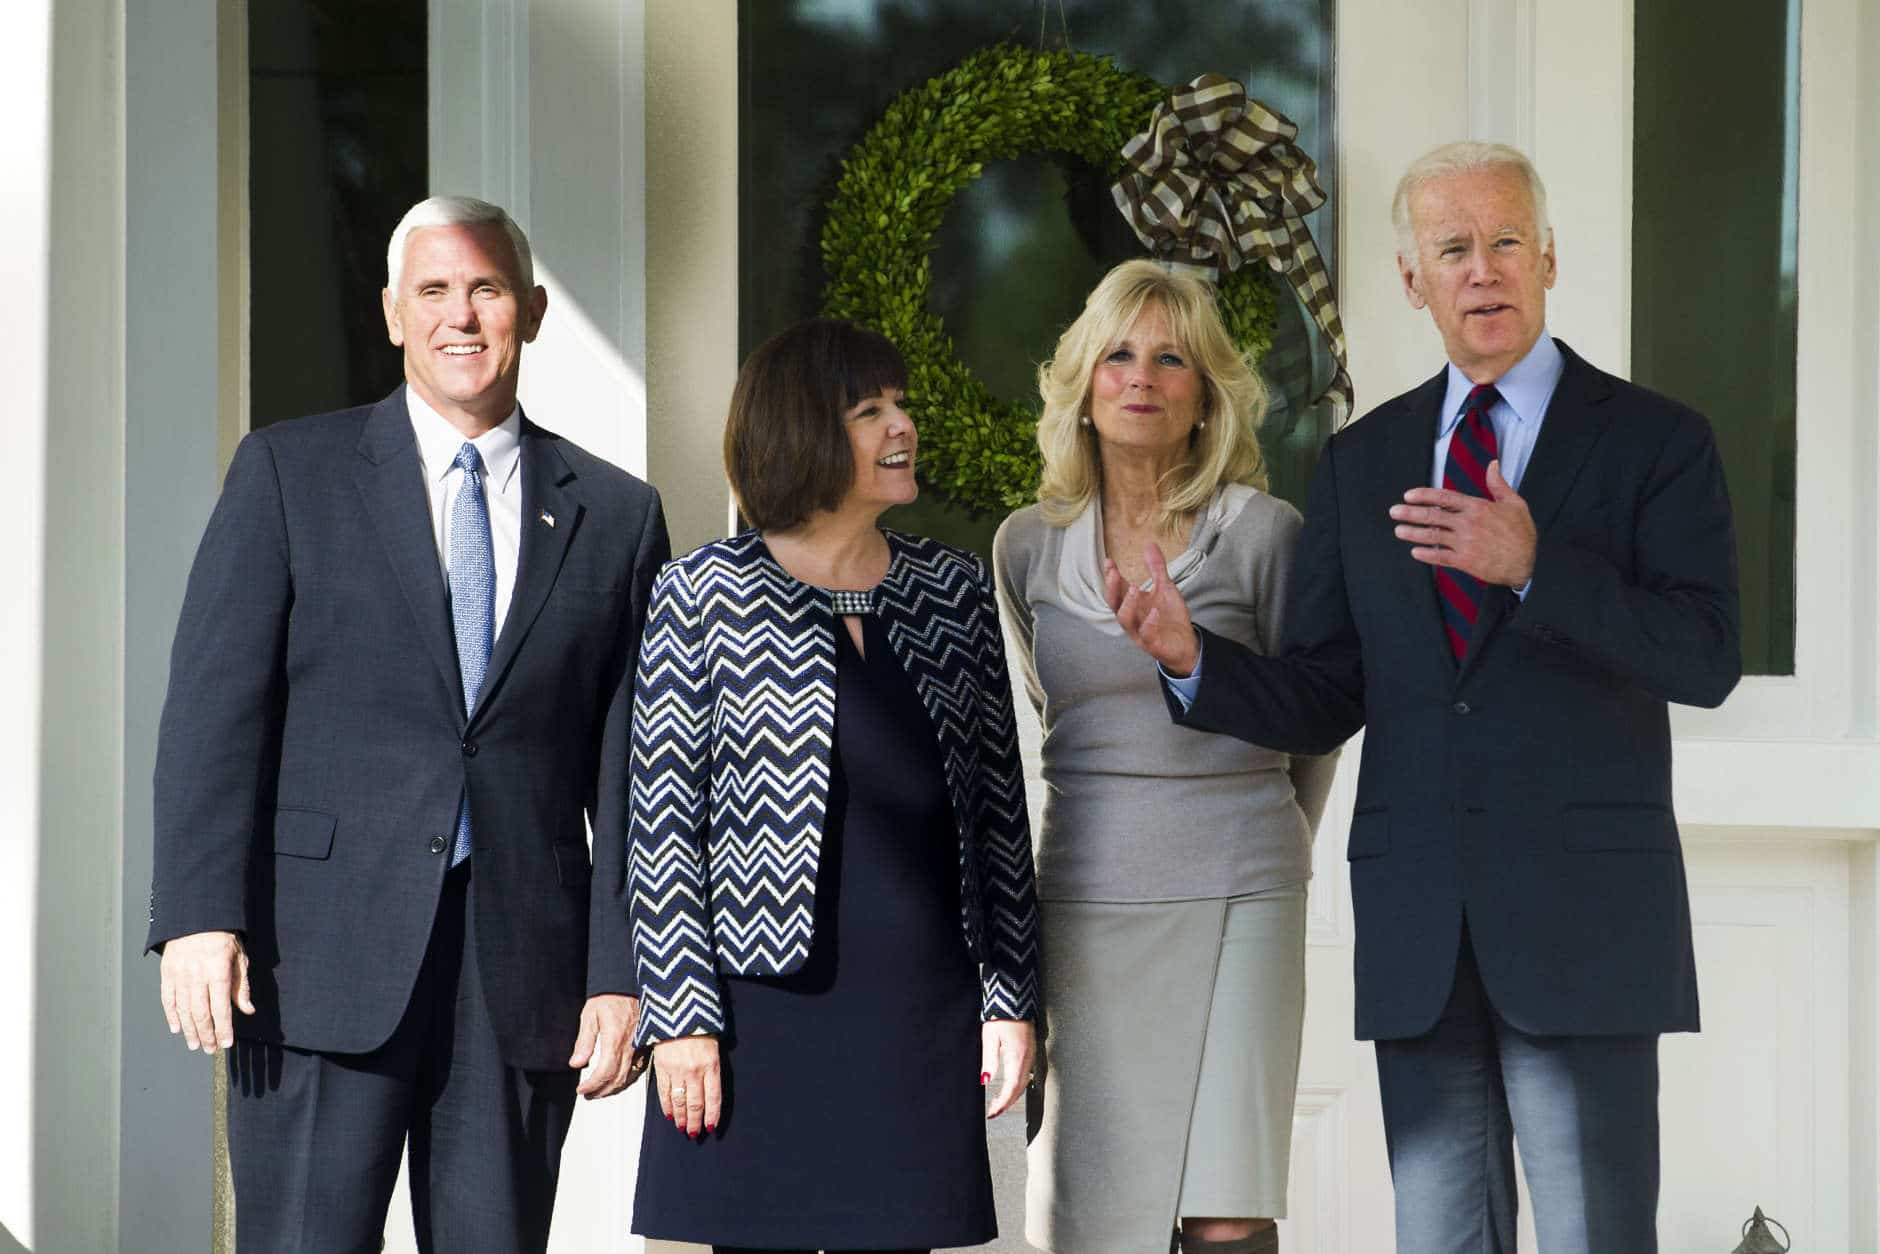 Vice President Joe Biden and Dr. Jill Biden pose for a photograph with Vice President-elect Mike Pence and his wife Karen after they had lunch at the Vice President's residence, the Naval Observatory, in Washington, Wednesday, Nov. 16, 2016. (AP Photo/Cliff Owen)